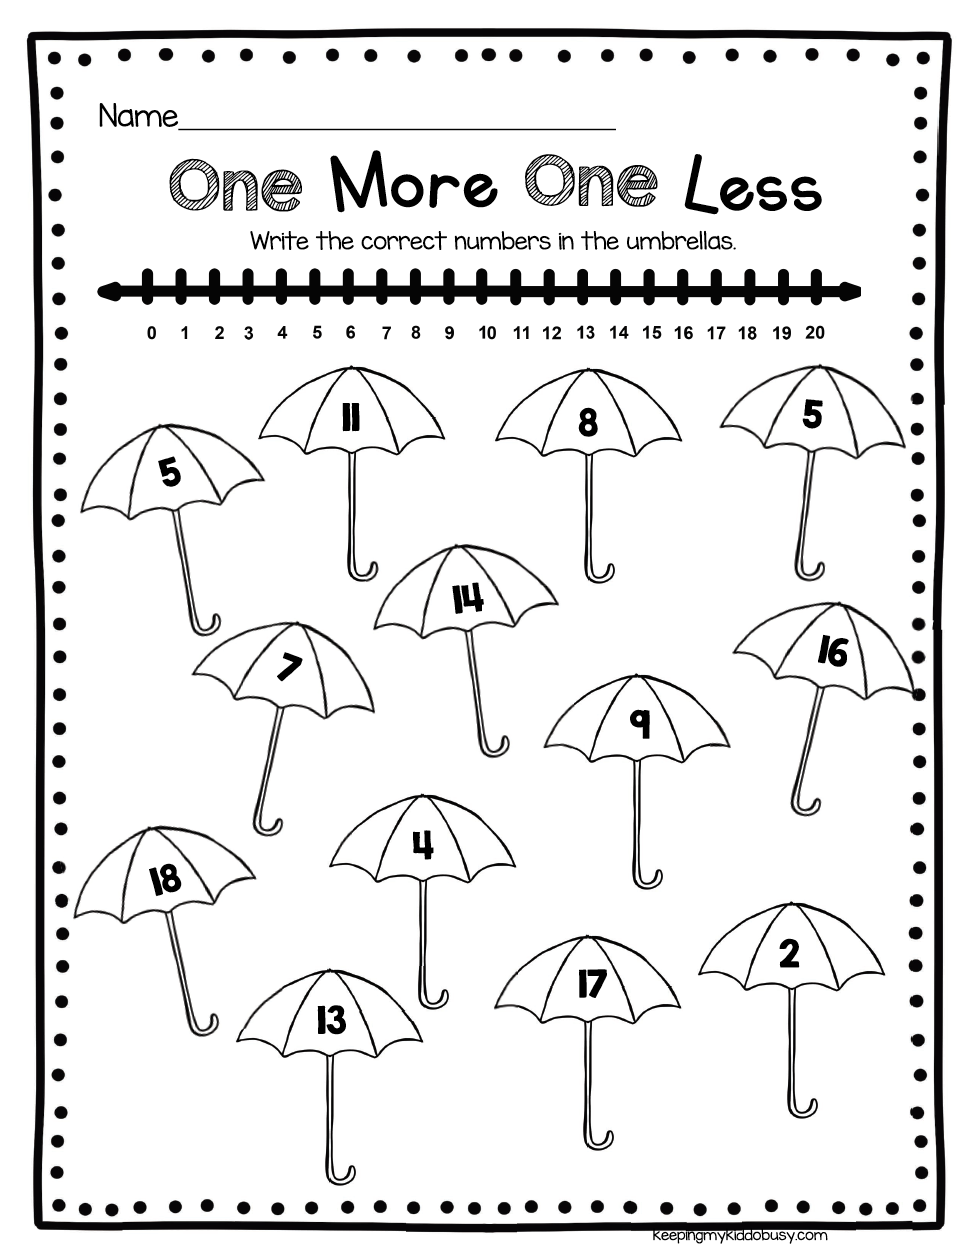 Kindergarten One More One Less Math And Reading Worksheets For Spring No Prep Spring Math Kindergarten Spring Math Worksheets Free Kindergarten Worksheets